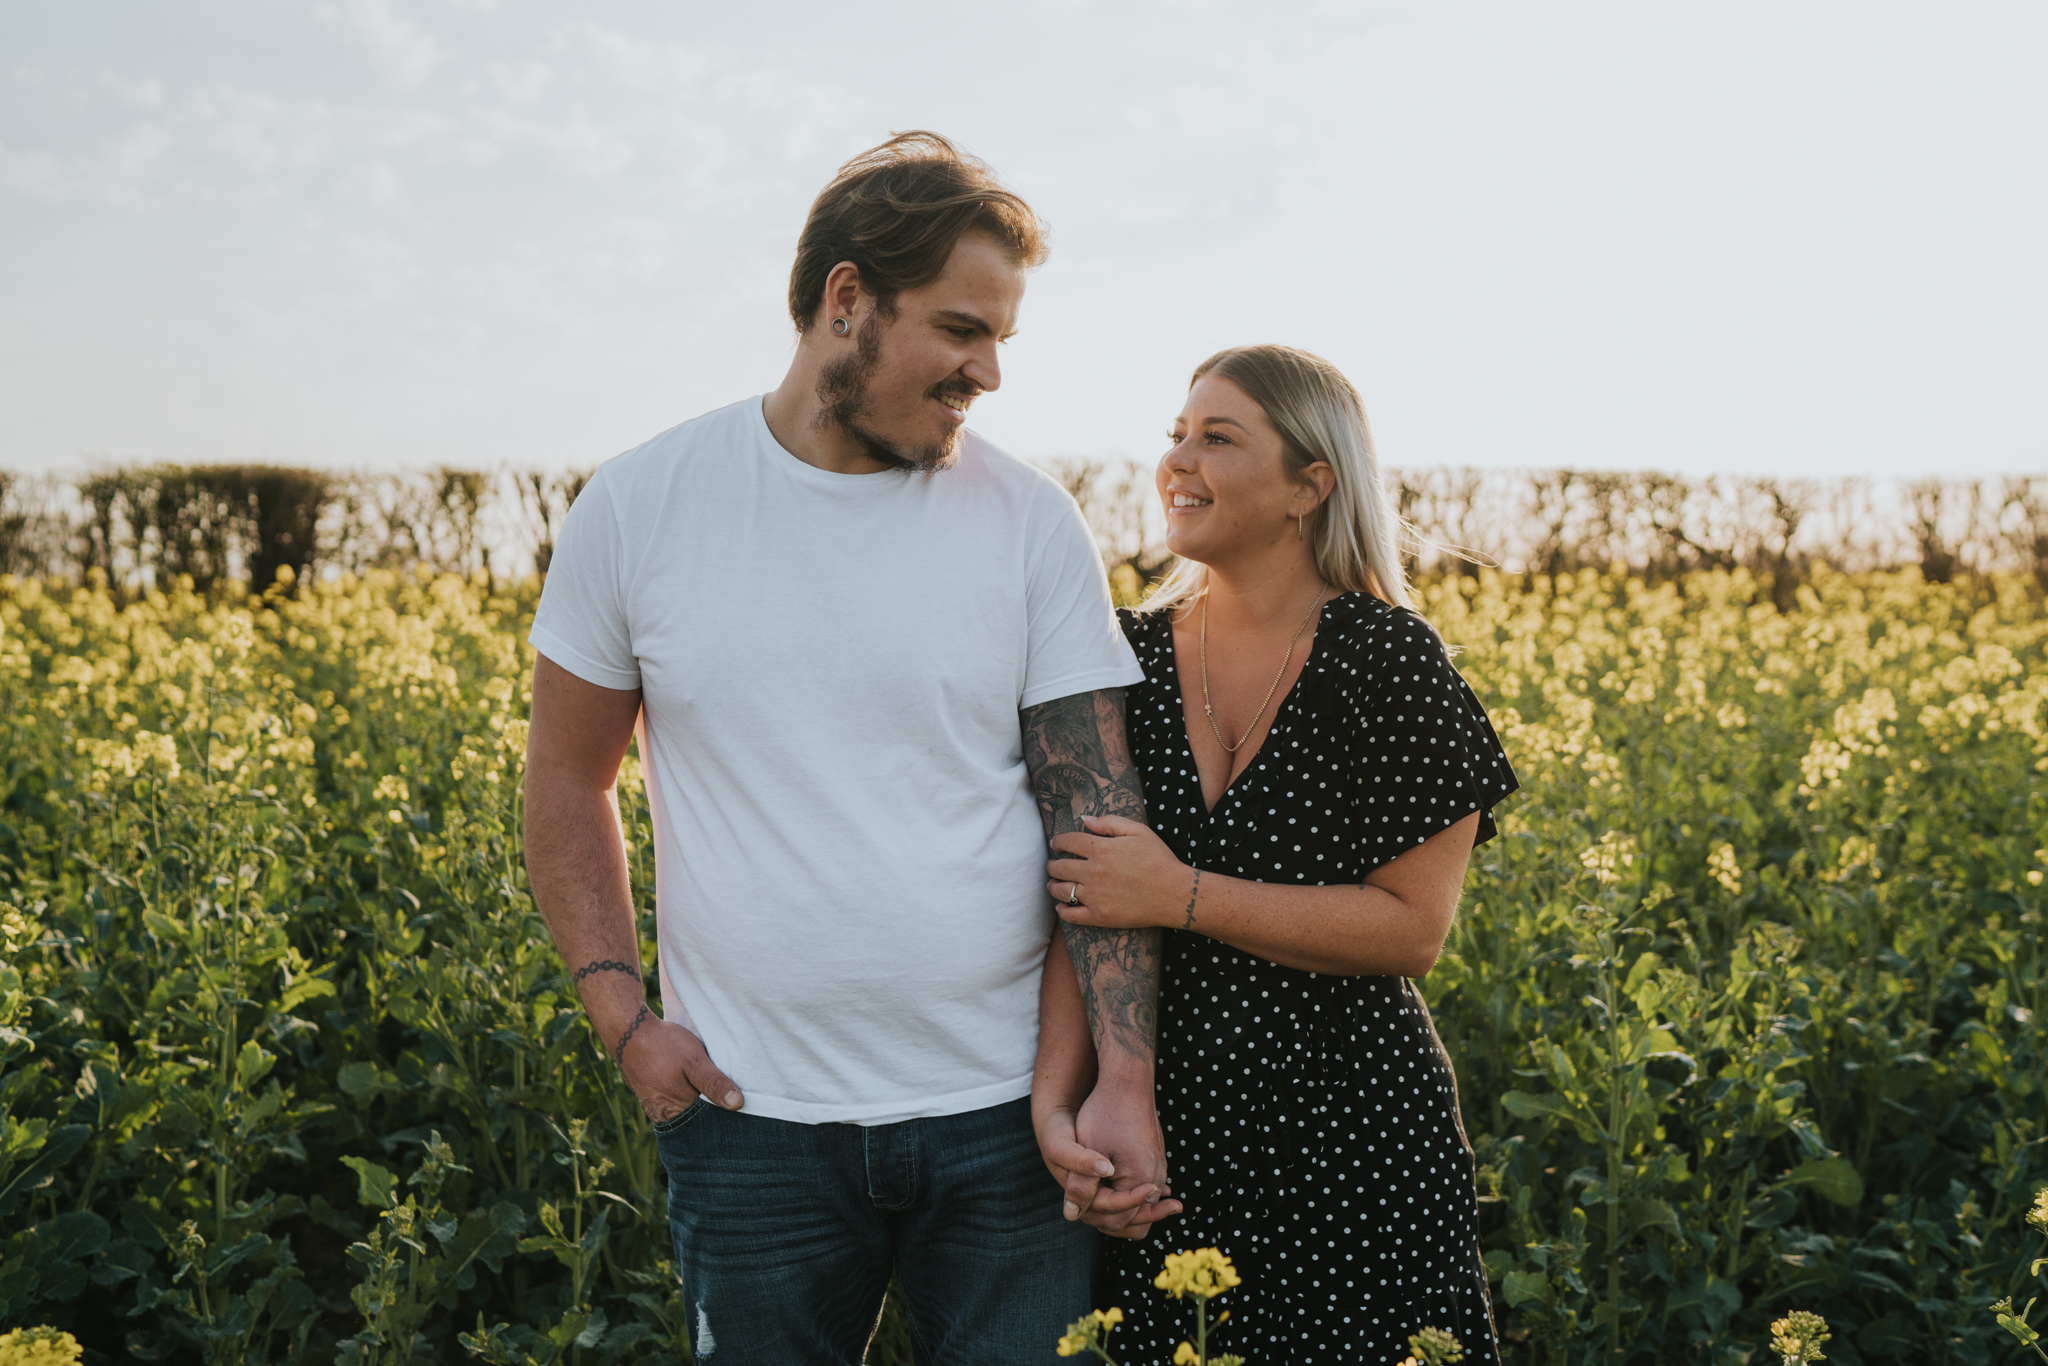 chloe-dan-pre-wedding-engagement-session-countryside-grace-elizabeth-colchester-essex-alternative-wedding-lifestyle-photographer-suffolk-norfolk-devon (16 of 50).jpg